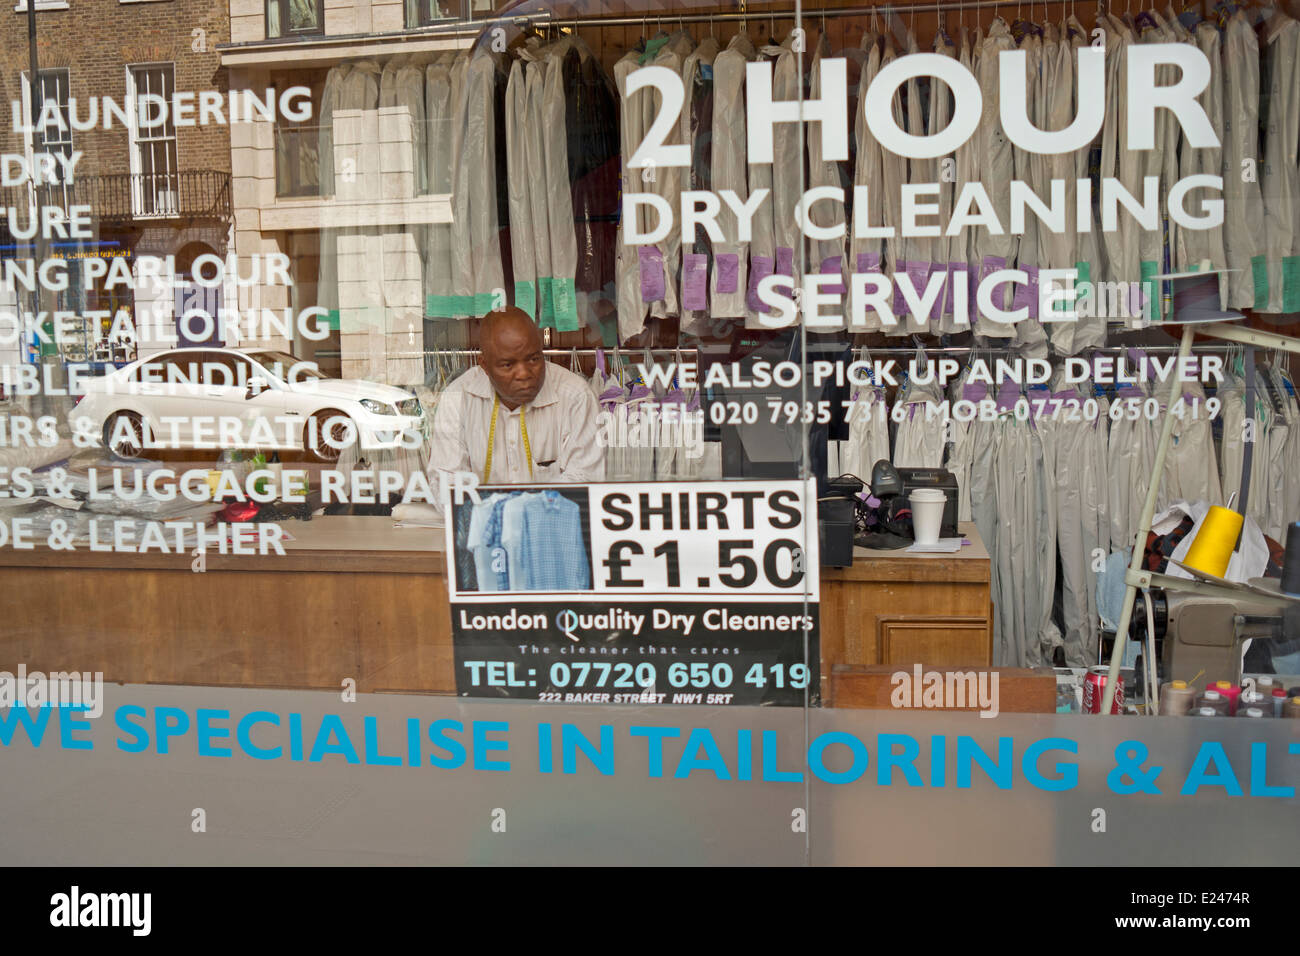 Page 2 Dry Cleaning Shop High Resolution Stock Photography And Images Alamy